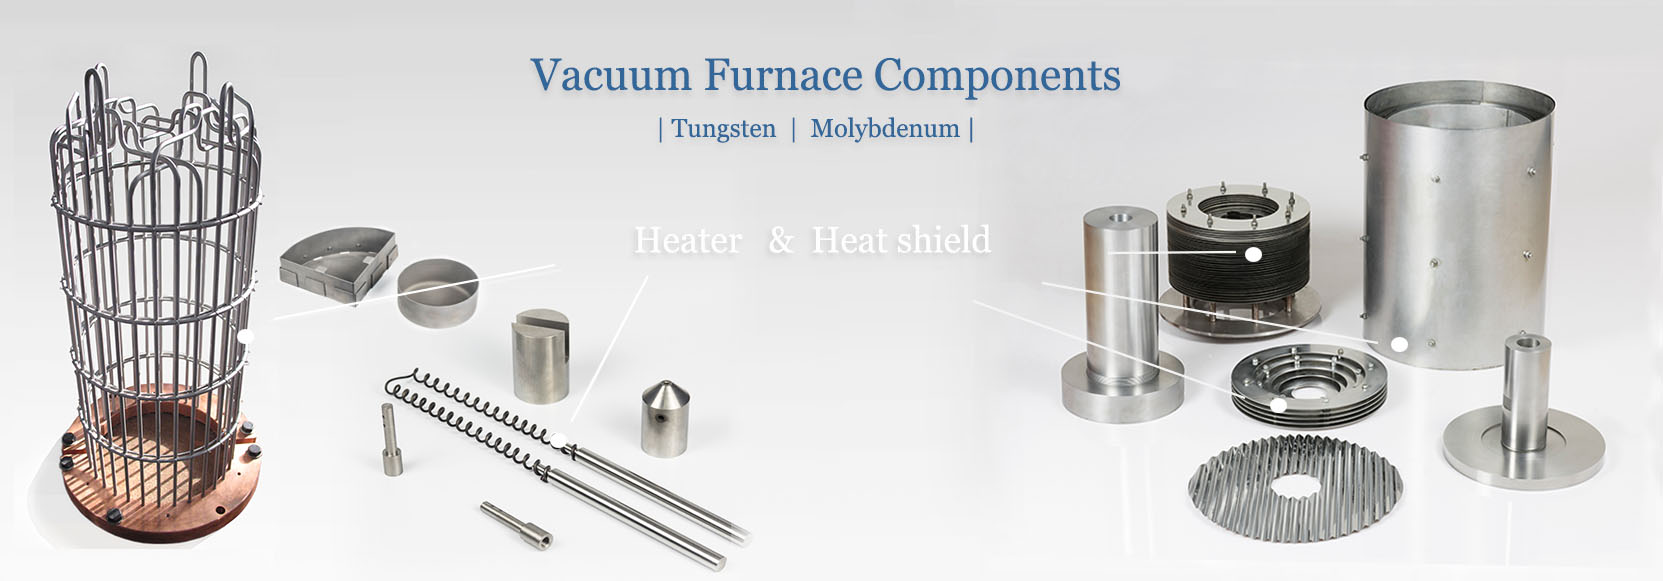 Vacuum Furnace Components